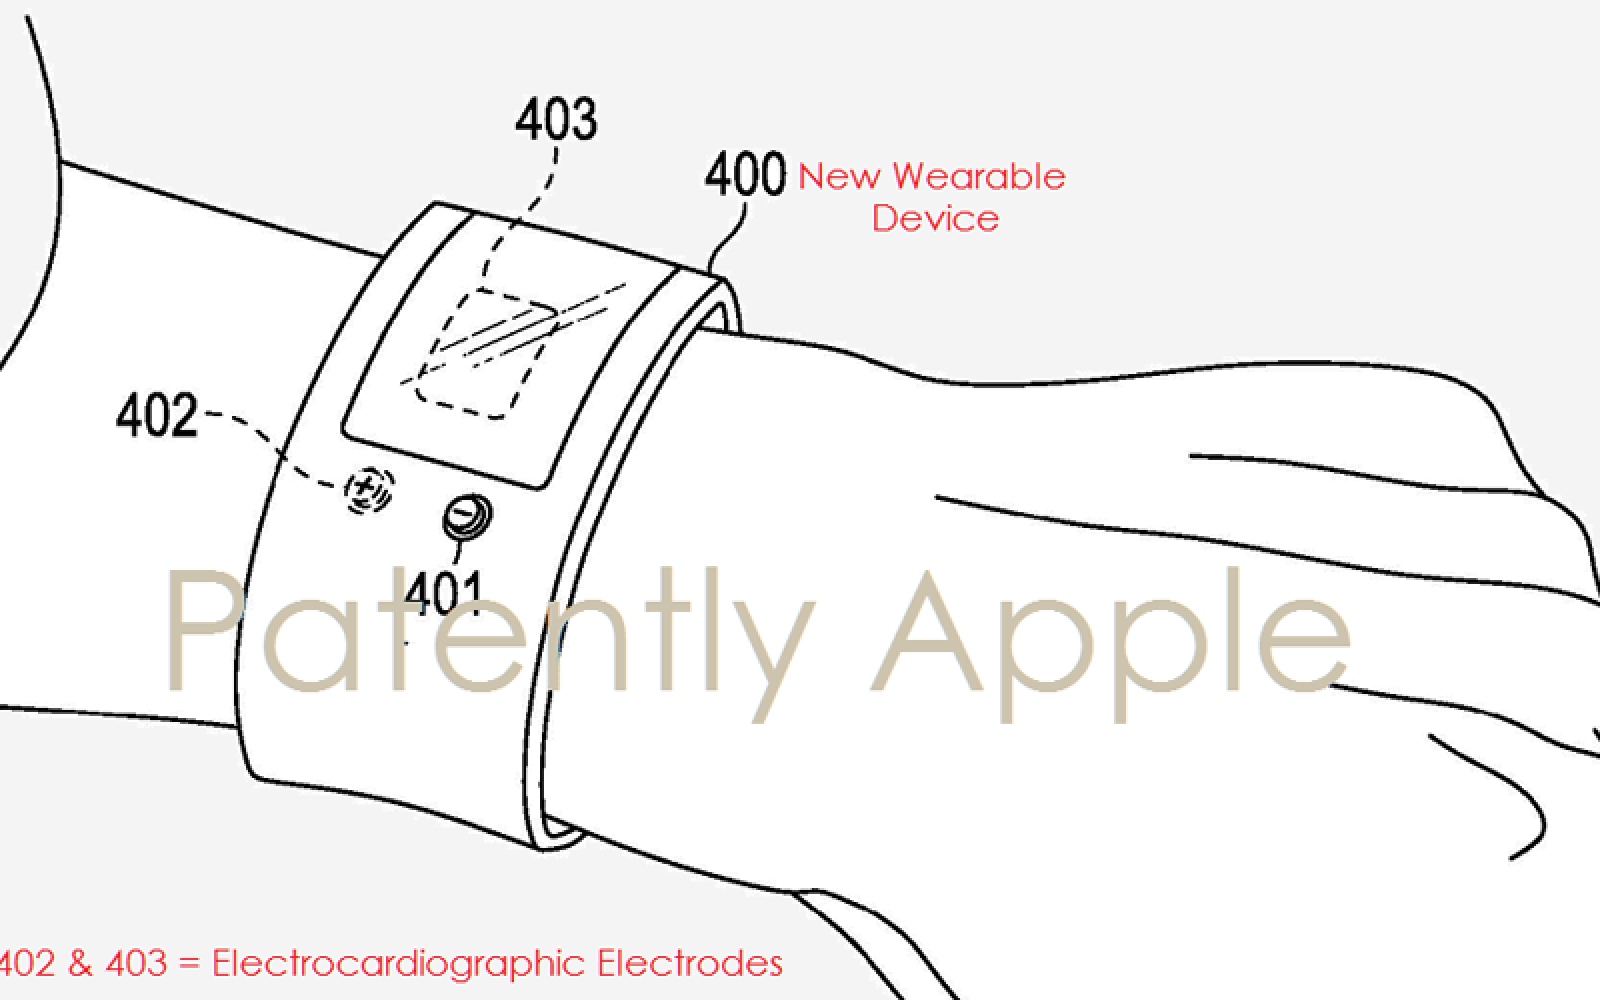 Apple applies for patent on wearable ECG device as watch, ring, brooch or similar